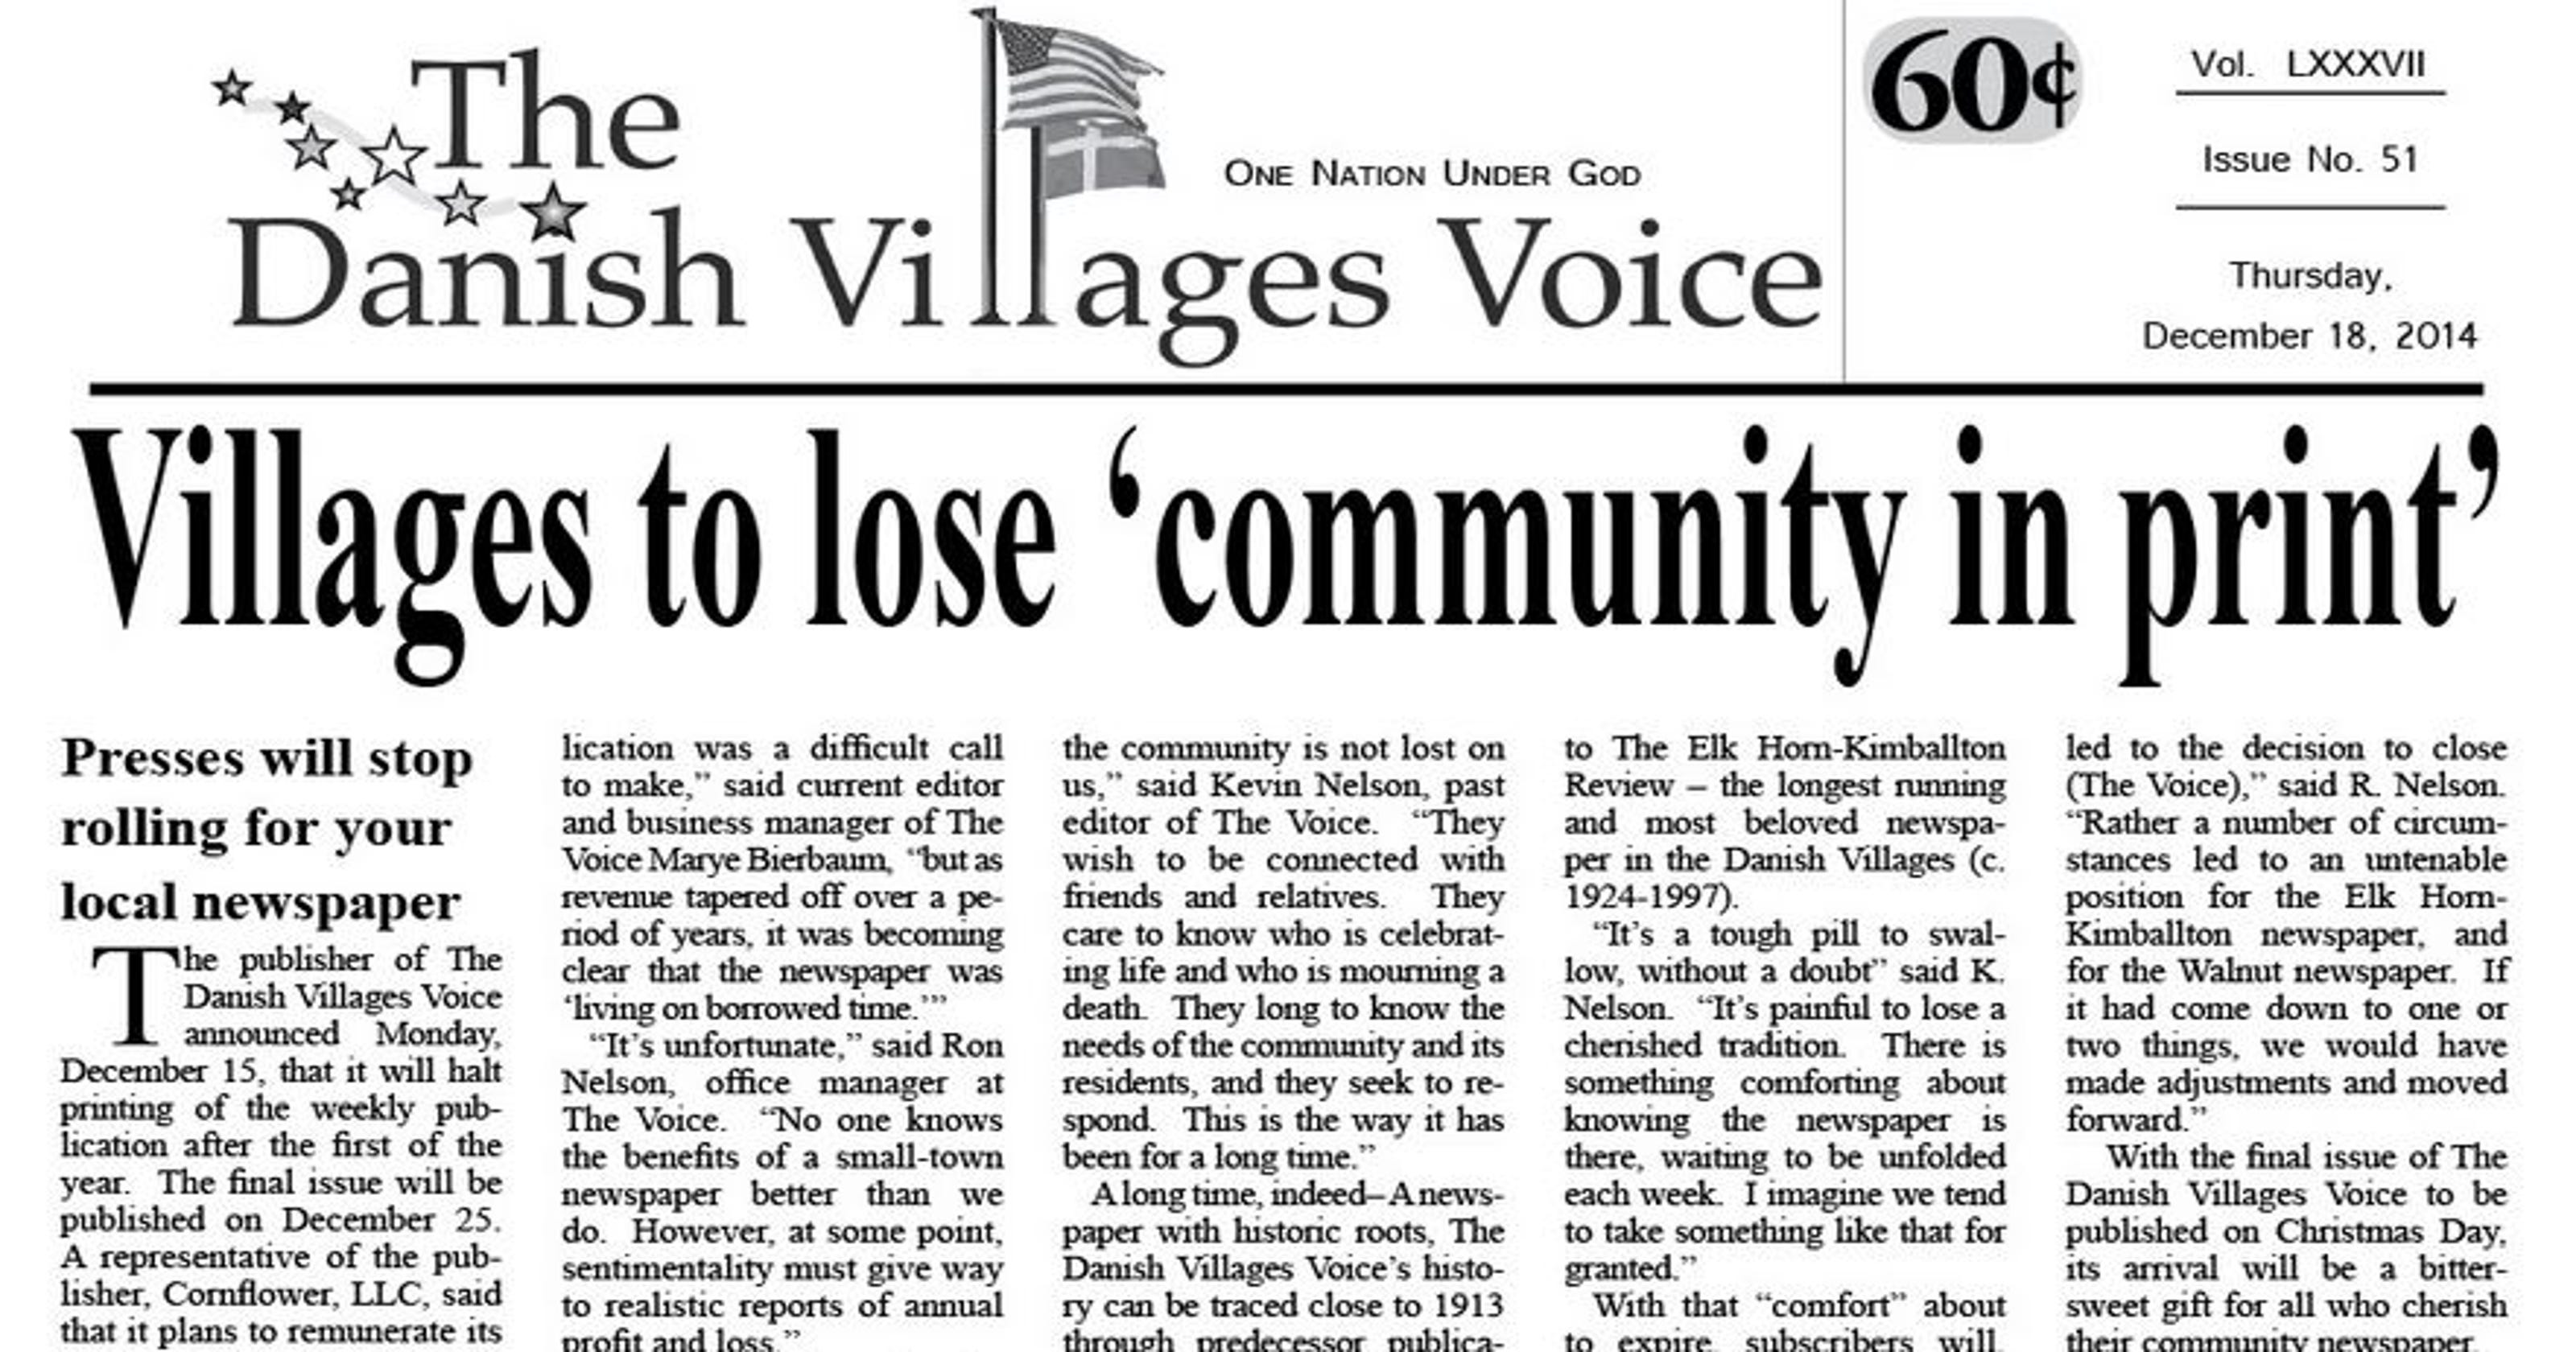 Munson: Pastor turns digital publisher to save small-town news